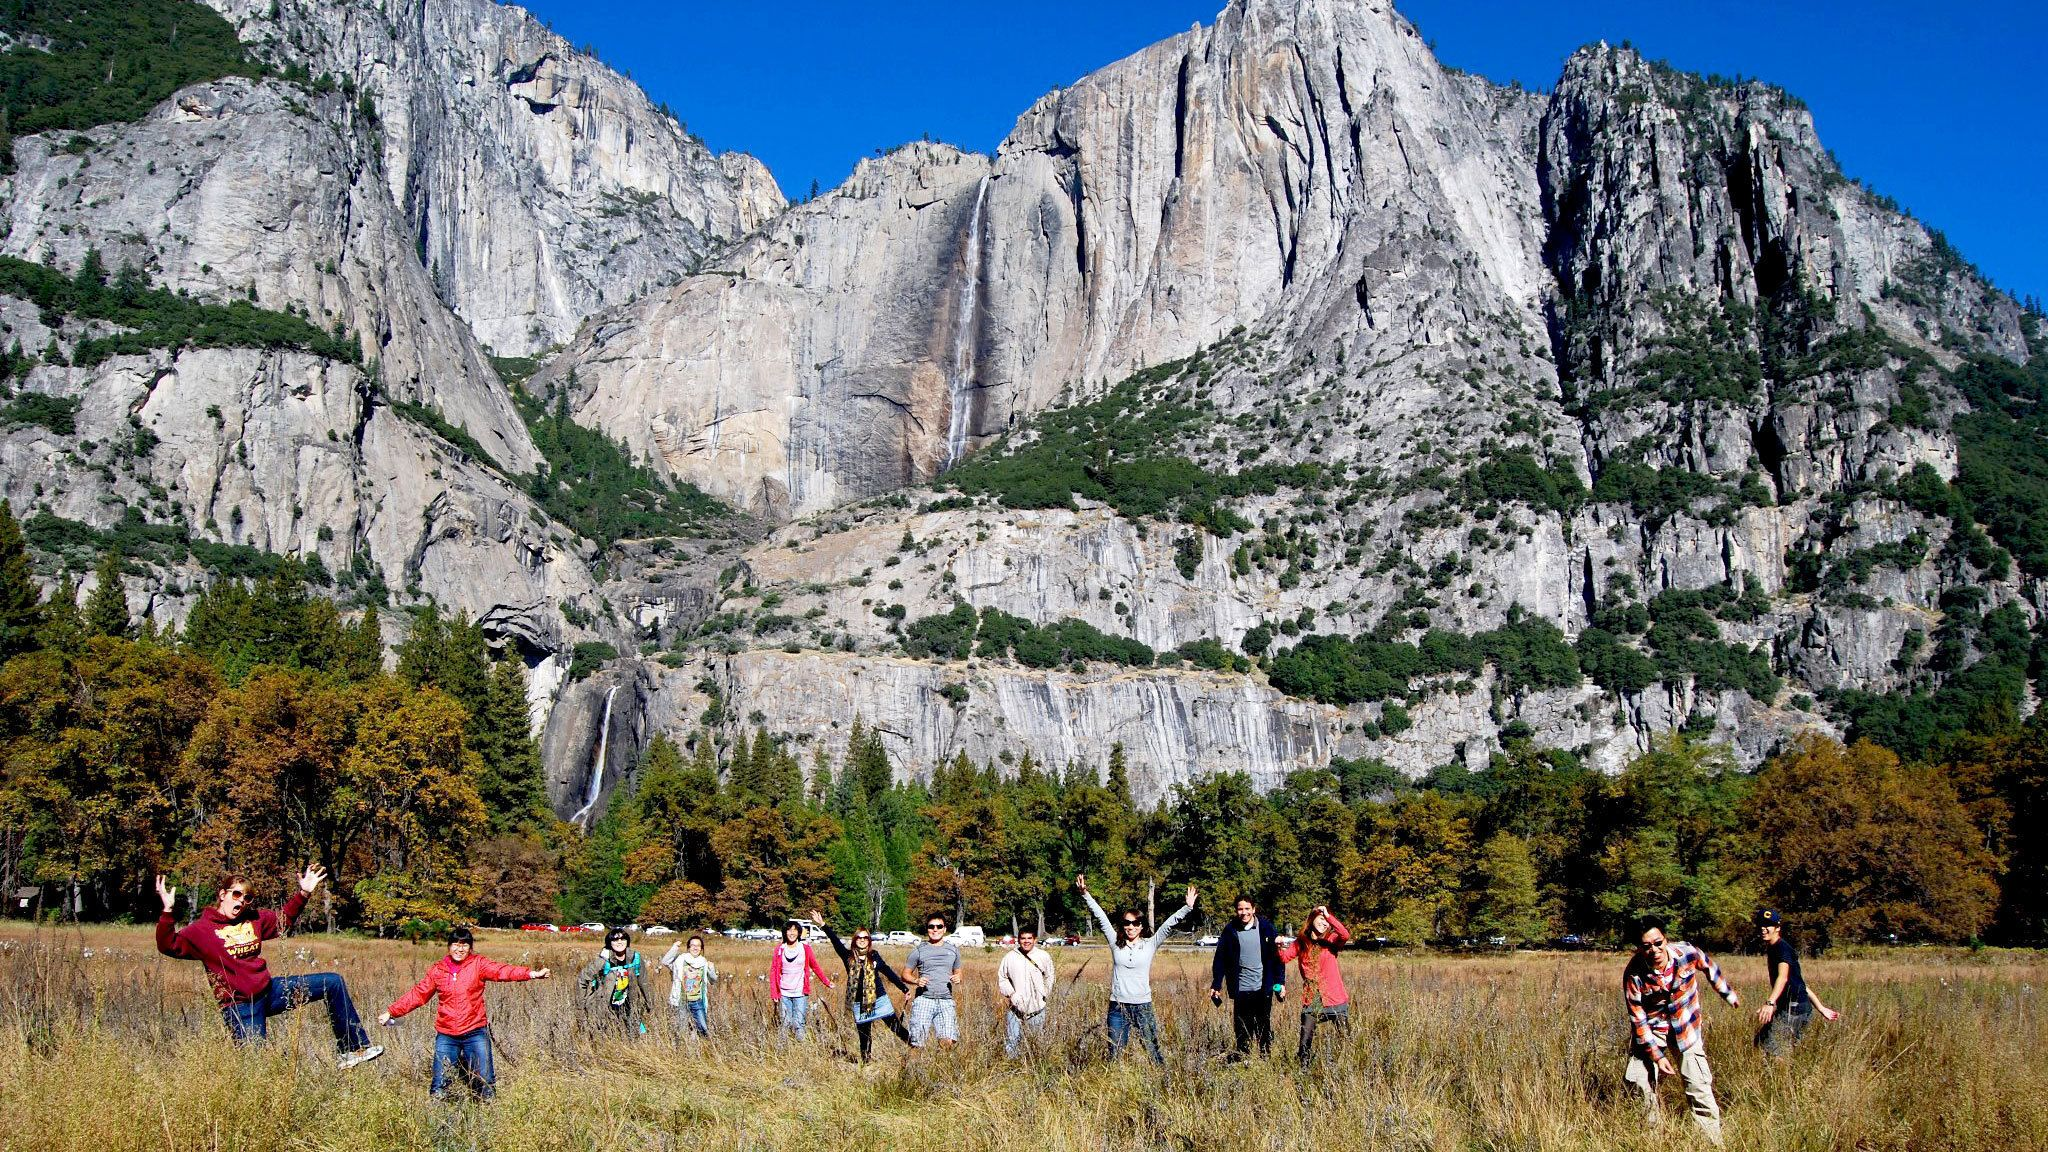 Group in a field in front of mountain at Yosemite National Park